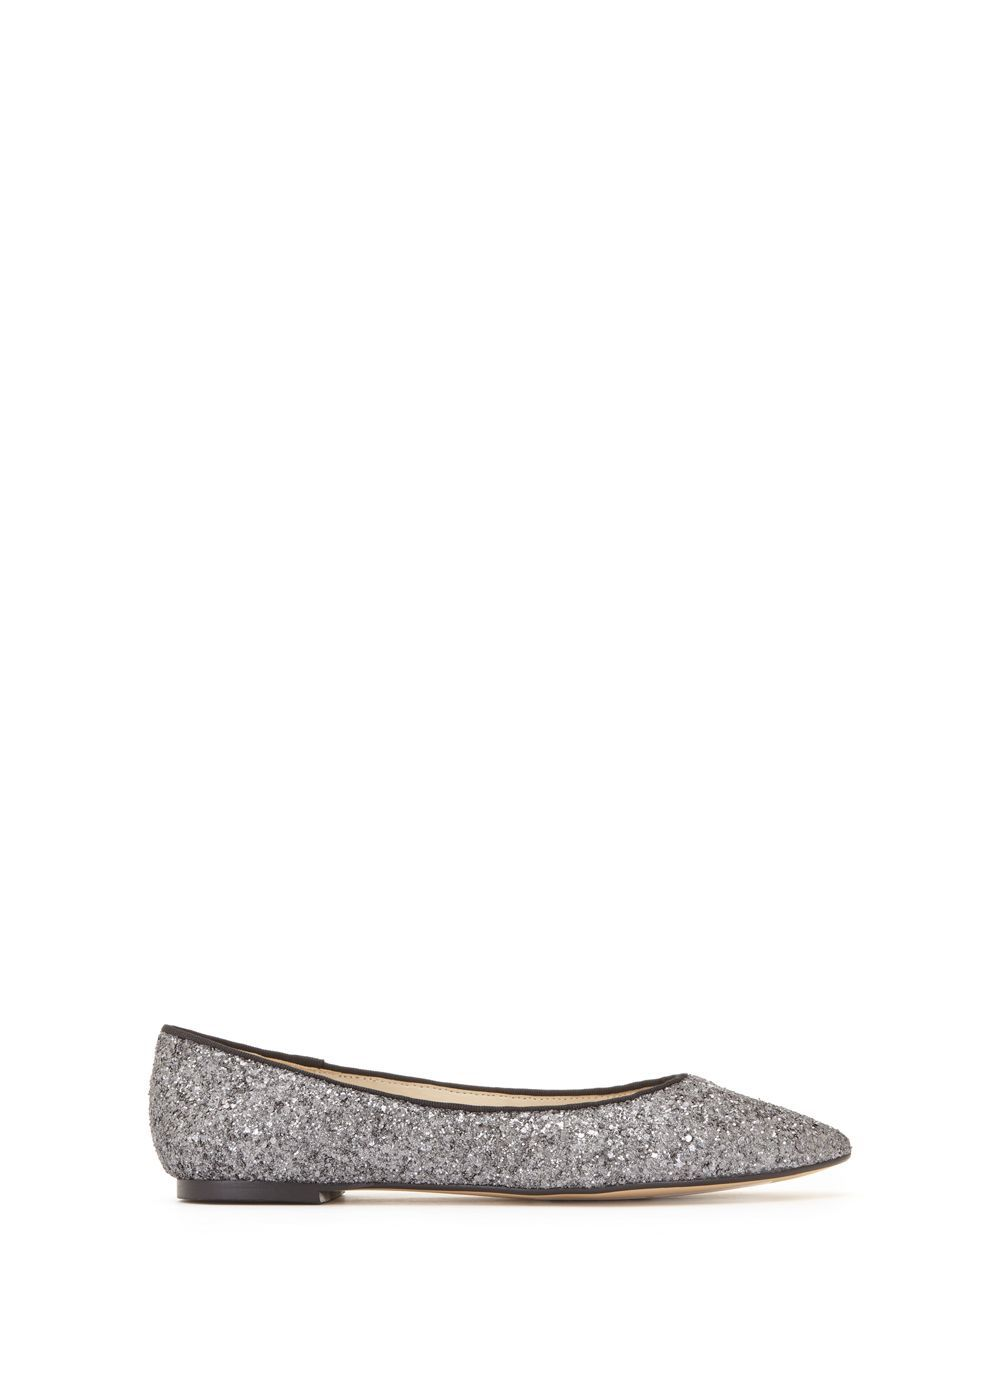 Pewter Nali Glitter Ballet Pump, Metallic - predominant colour: silver; occasions: casual; material: leather; heel height: flat; embellishment: glitter; toe: pointed toe; style: ballerinas / pumps; finish: metallic; pattern: plain; season: s/s 2016; wardrobe: basic